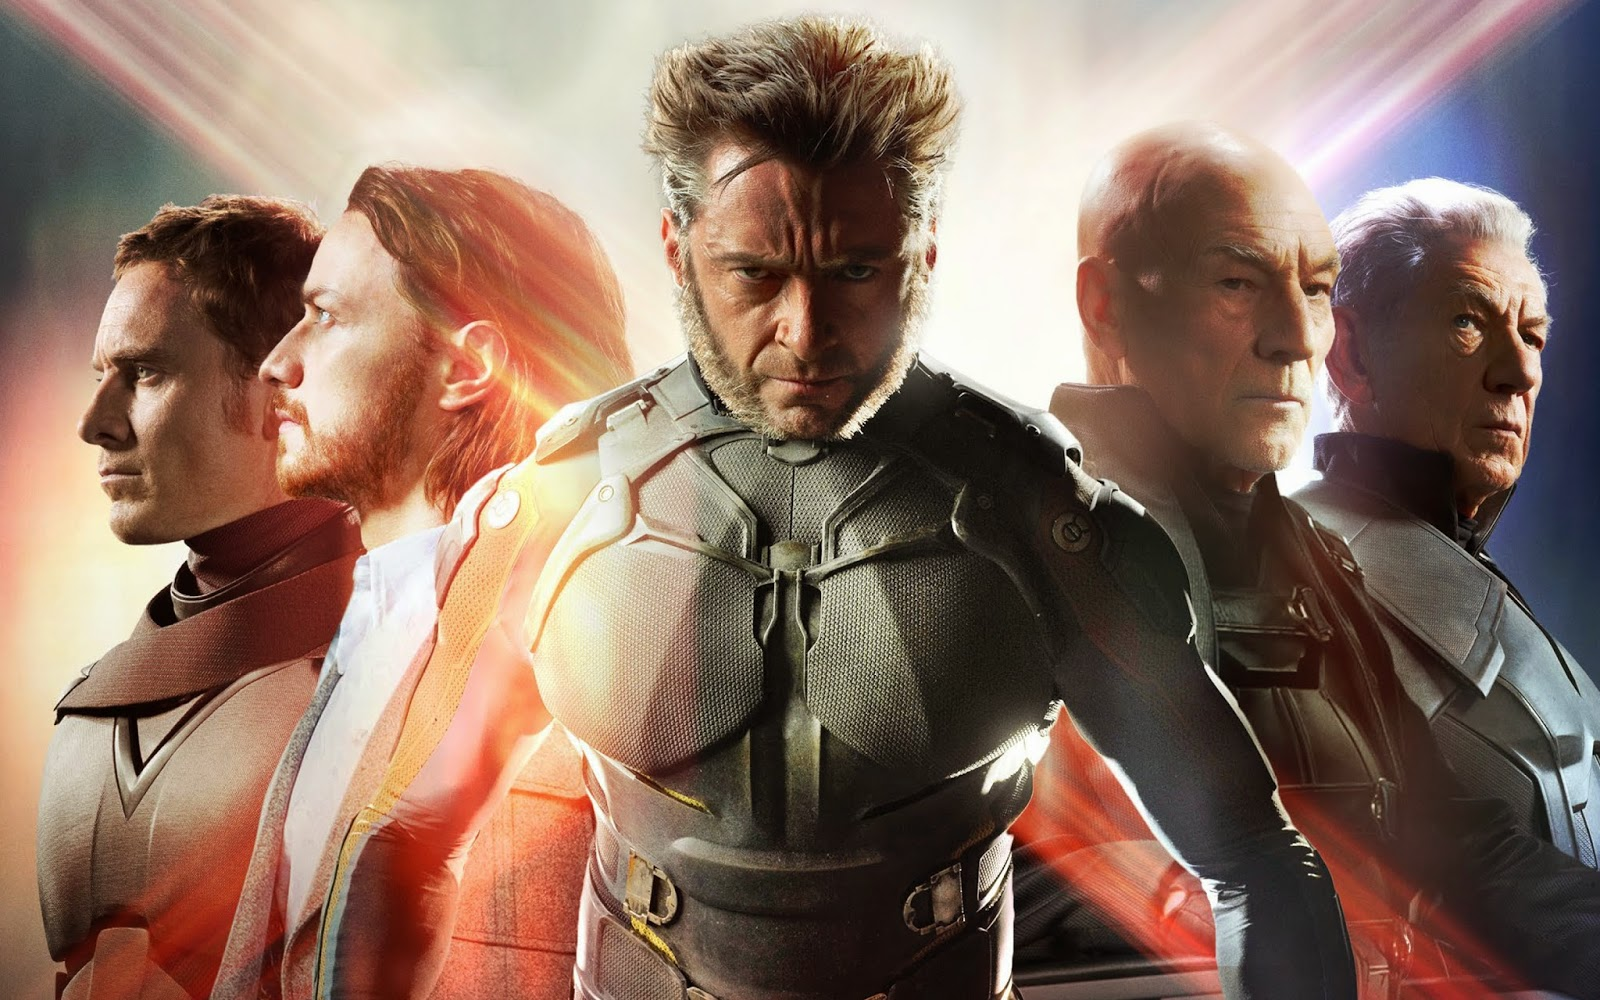 MOVIE REVIEW: X-Men: Days of Future Past best of franchise